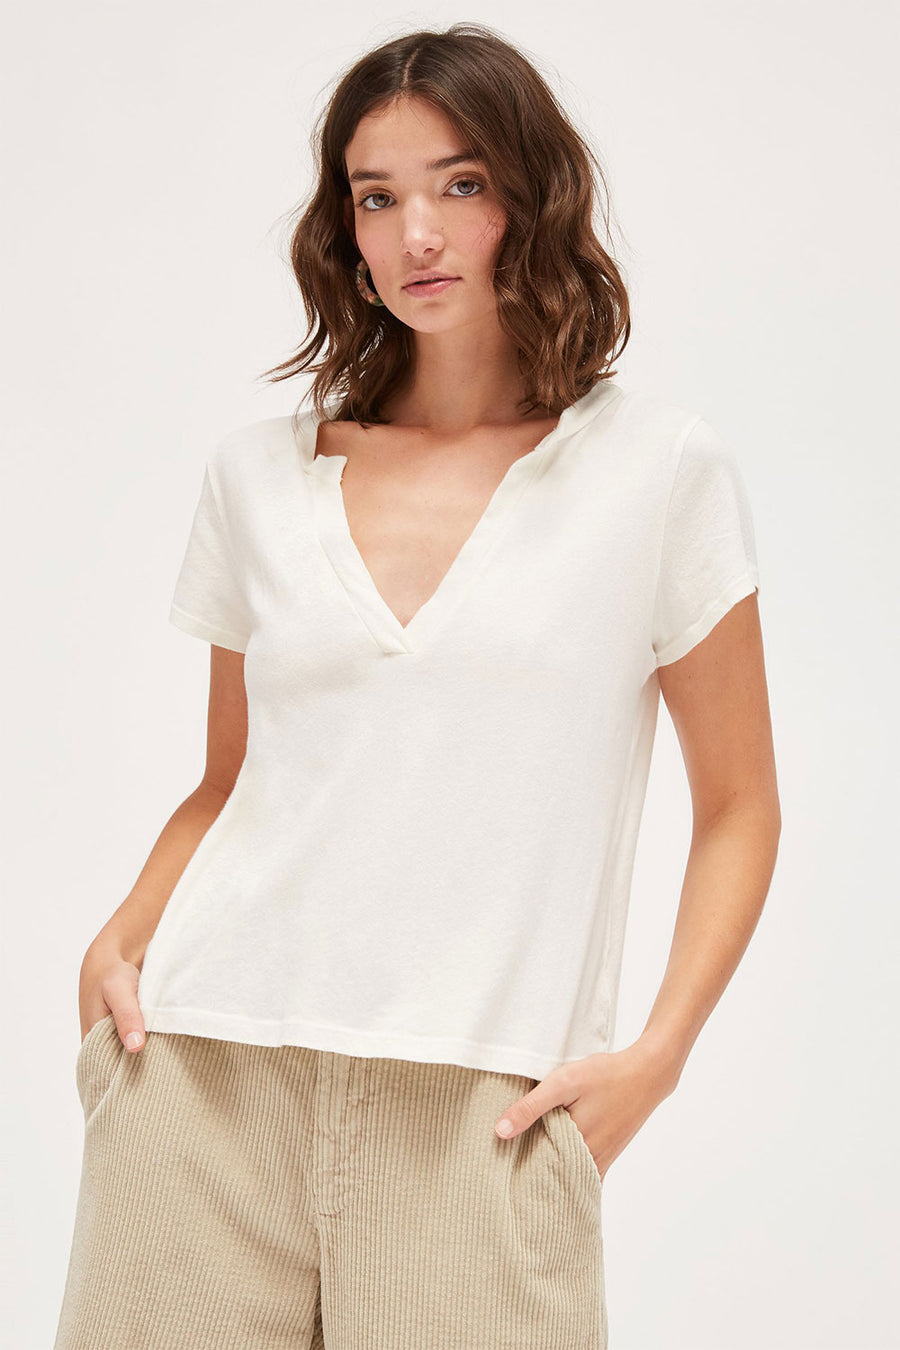 Relaxed Baby V | White | Tops NZ | LACAUSA NZ | Black Box Boutique Auckland | Womens Fashion NZ